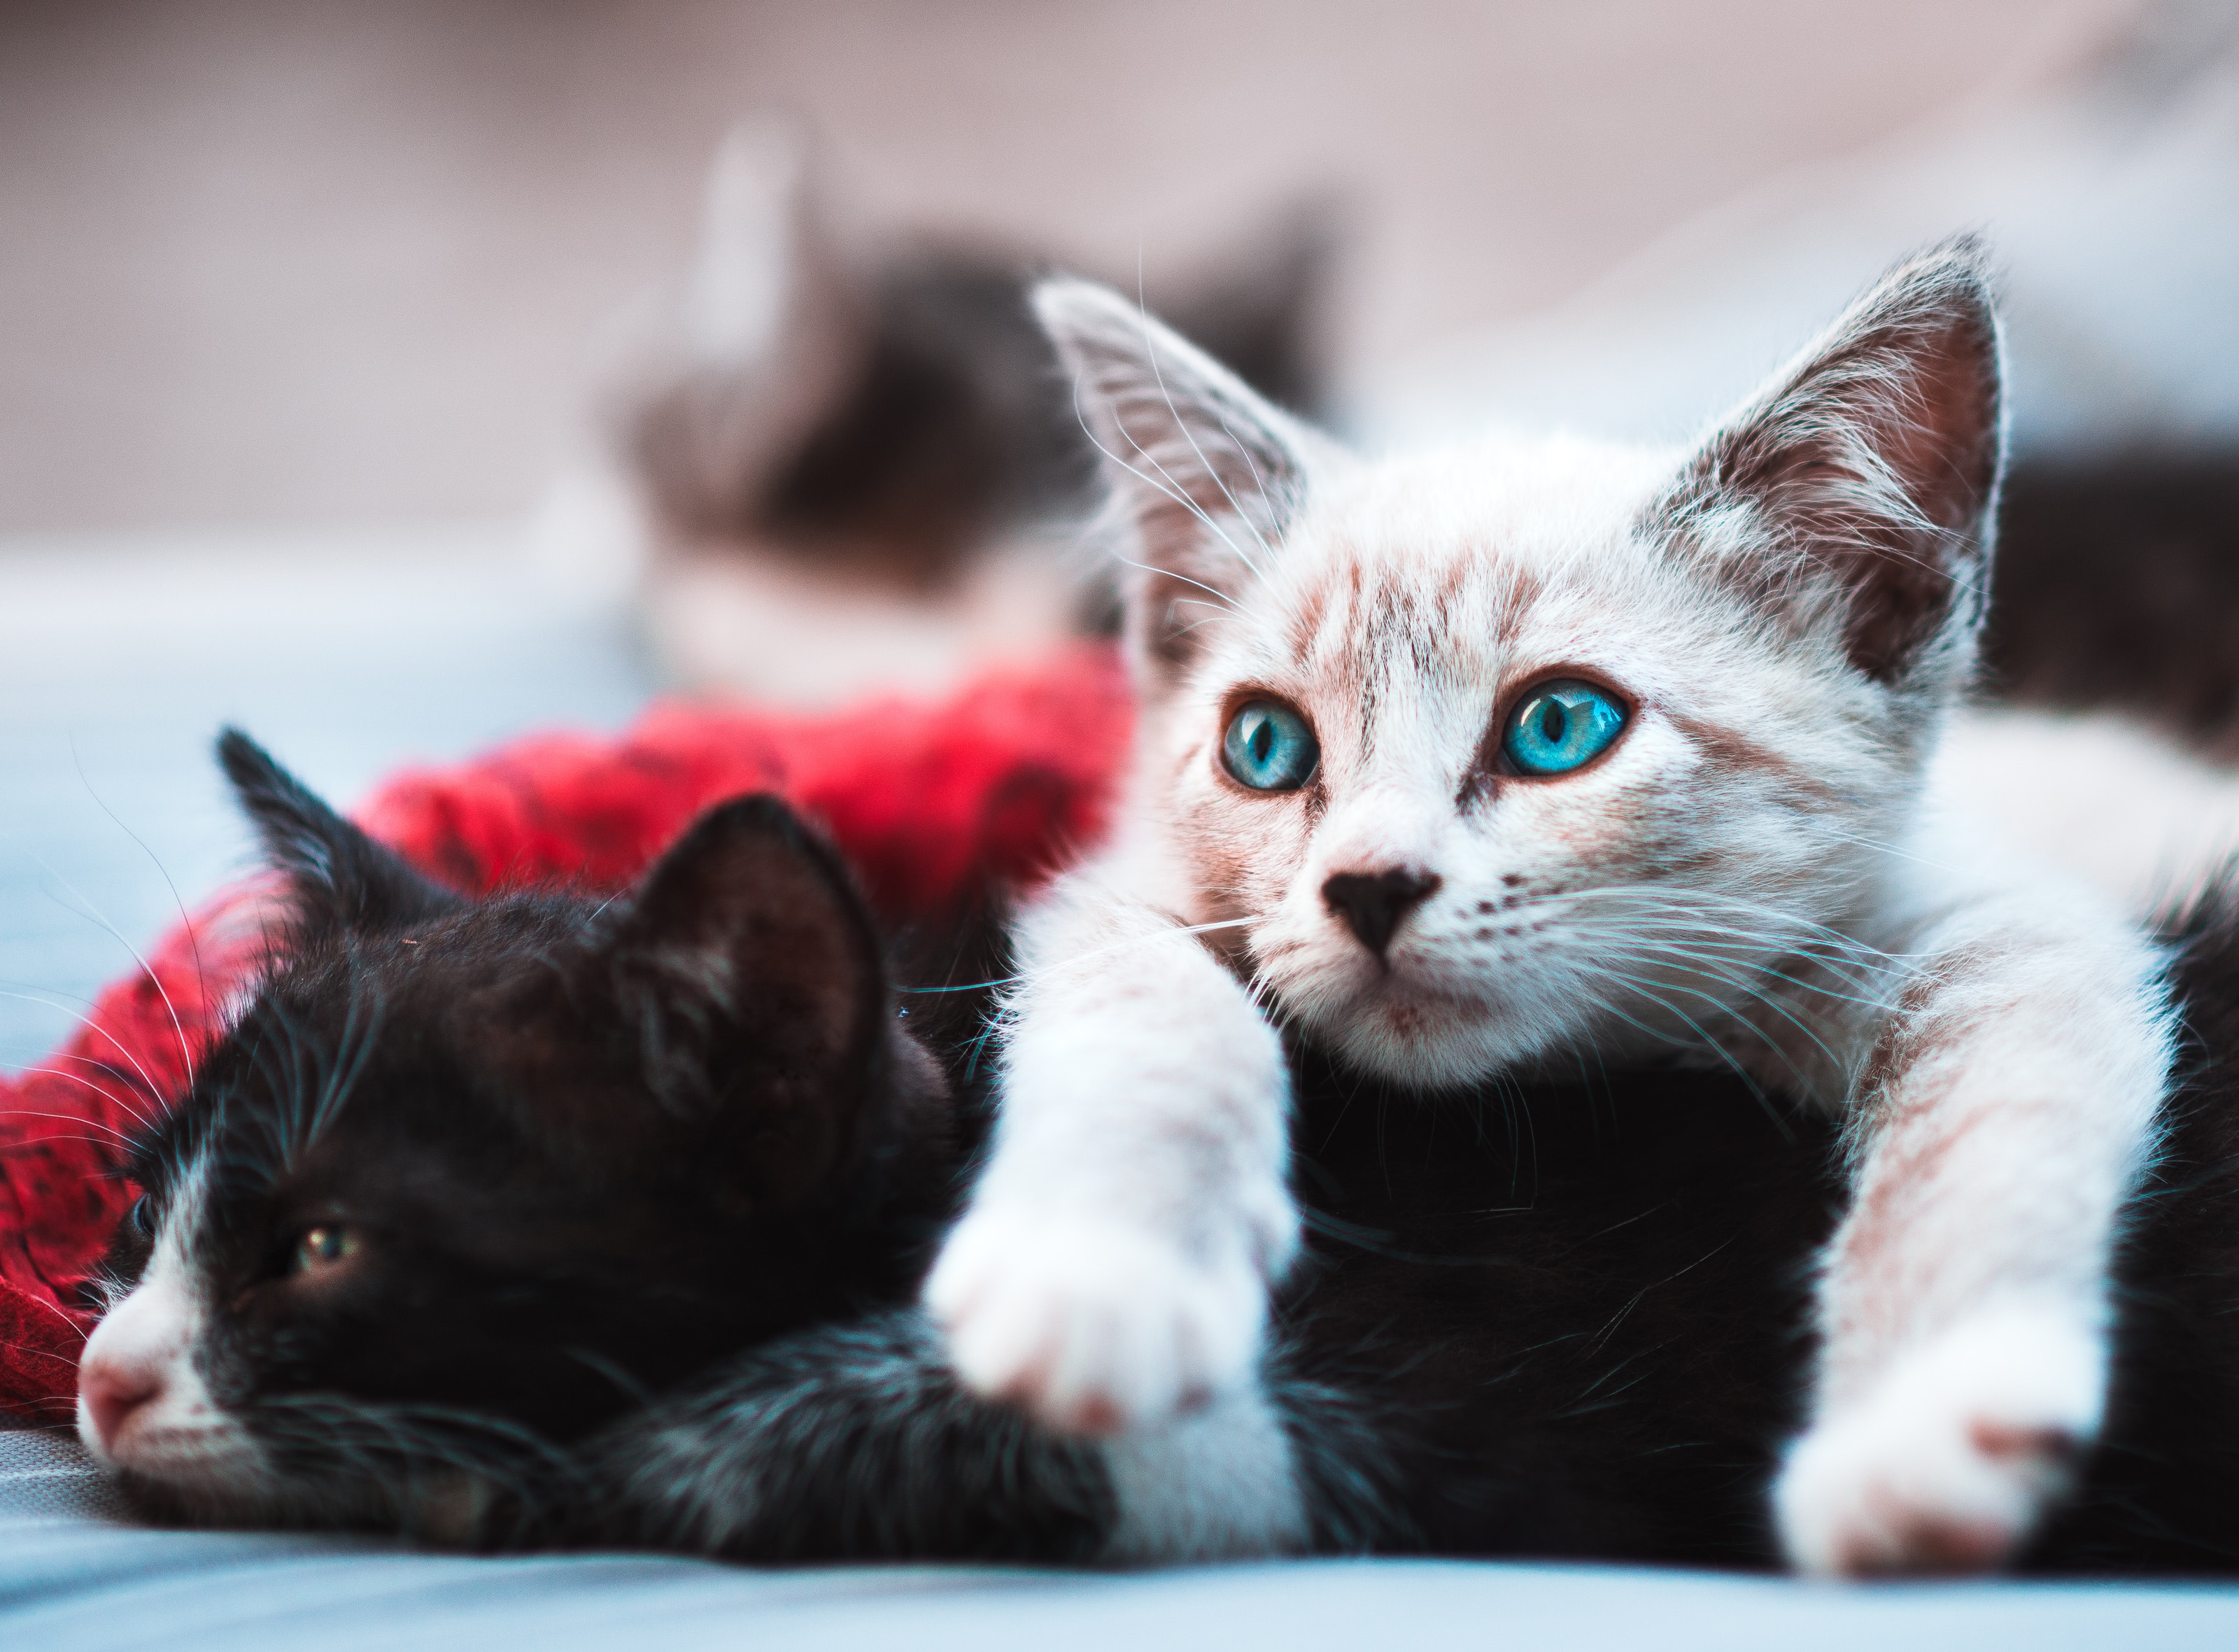 Questions to Ask While Choosing a Cat Breeder